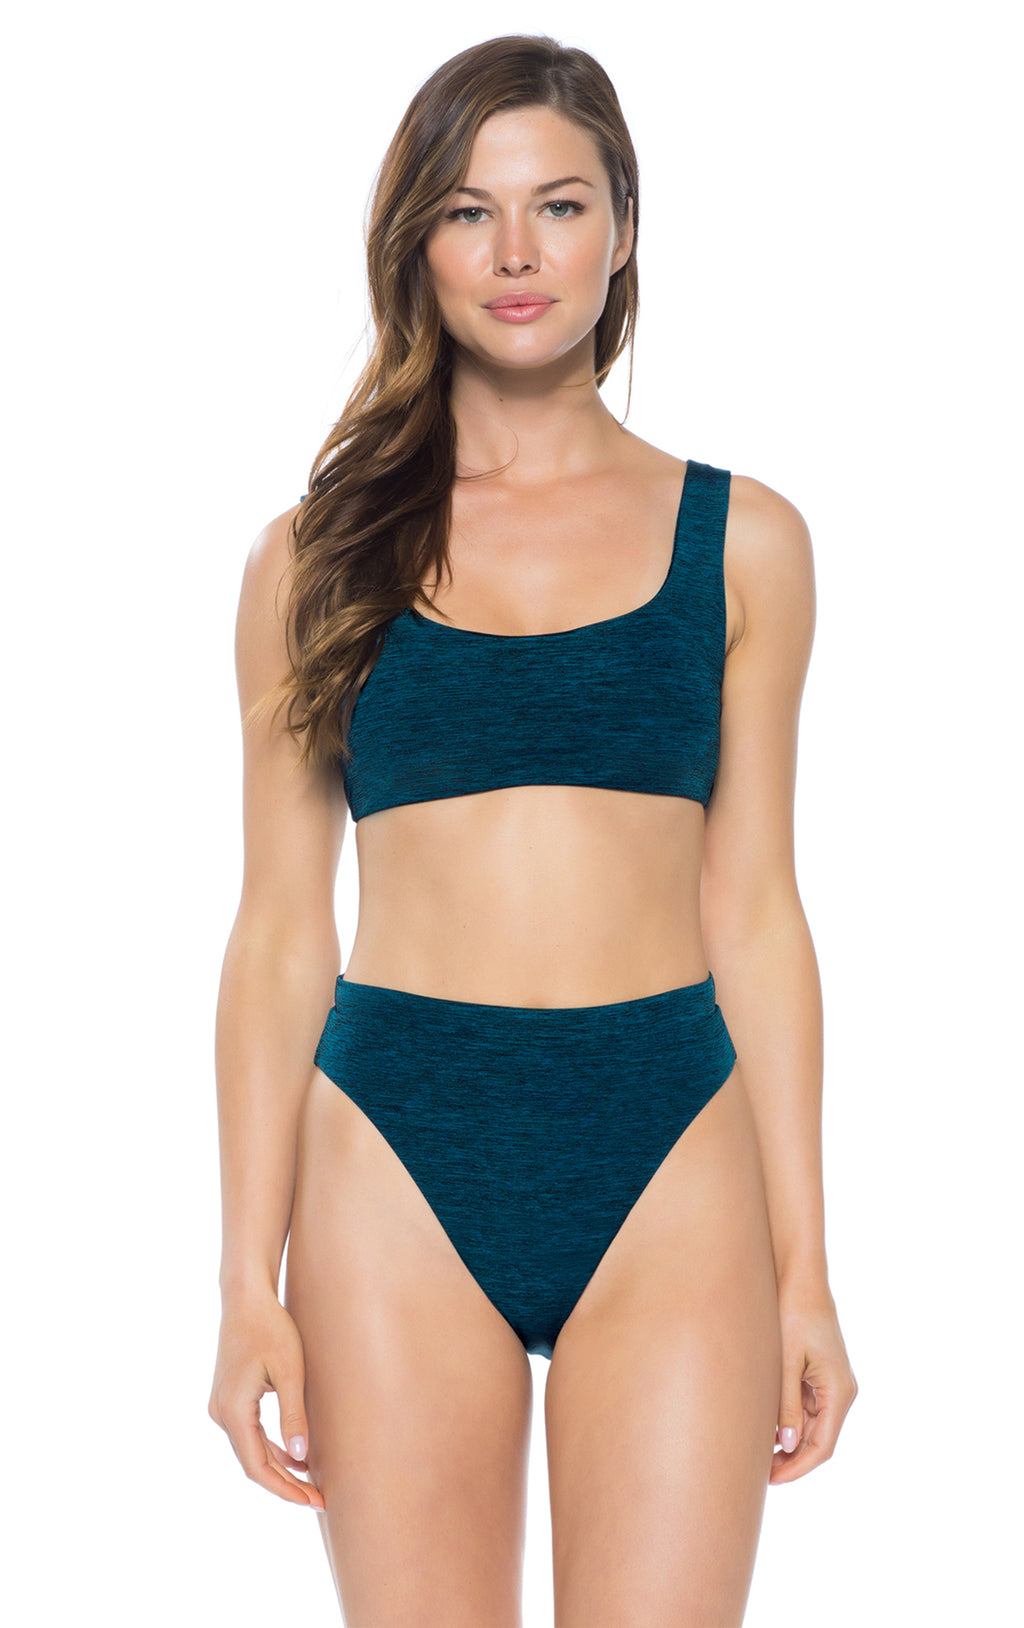 Mesa Verde Scoop Neck Bralette Top